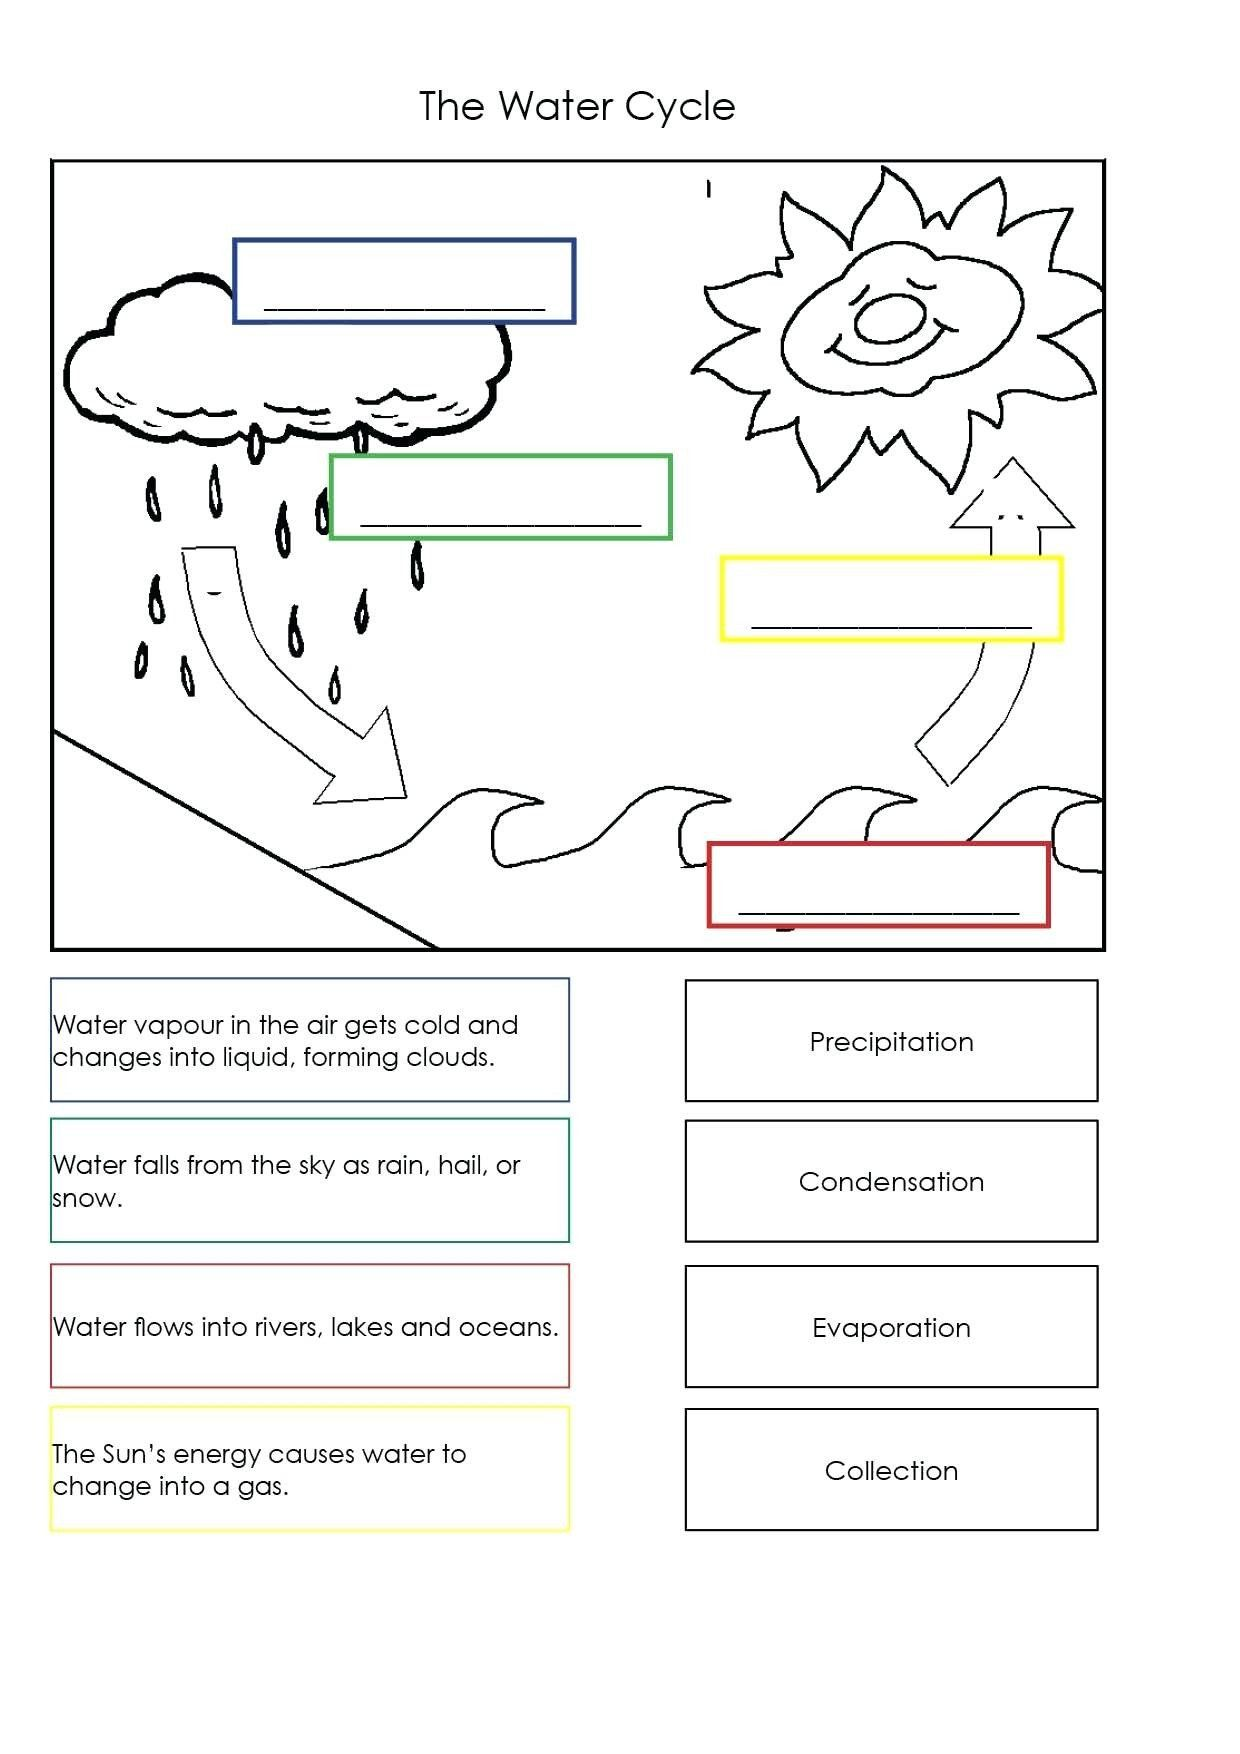 Water Cycle Worksheets 5th Grade the Water Cycle Worksheets Water Cycle Worksheet  for Grade 4   Water cycle worksheet [ 1754 x 1240 Pixel ]